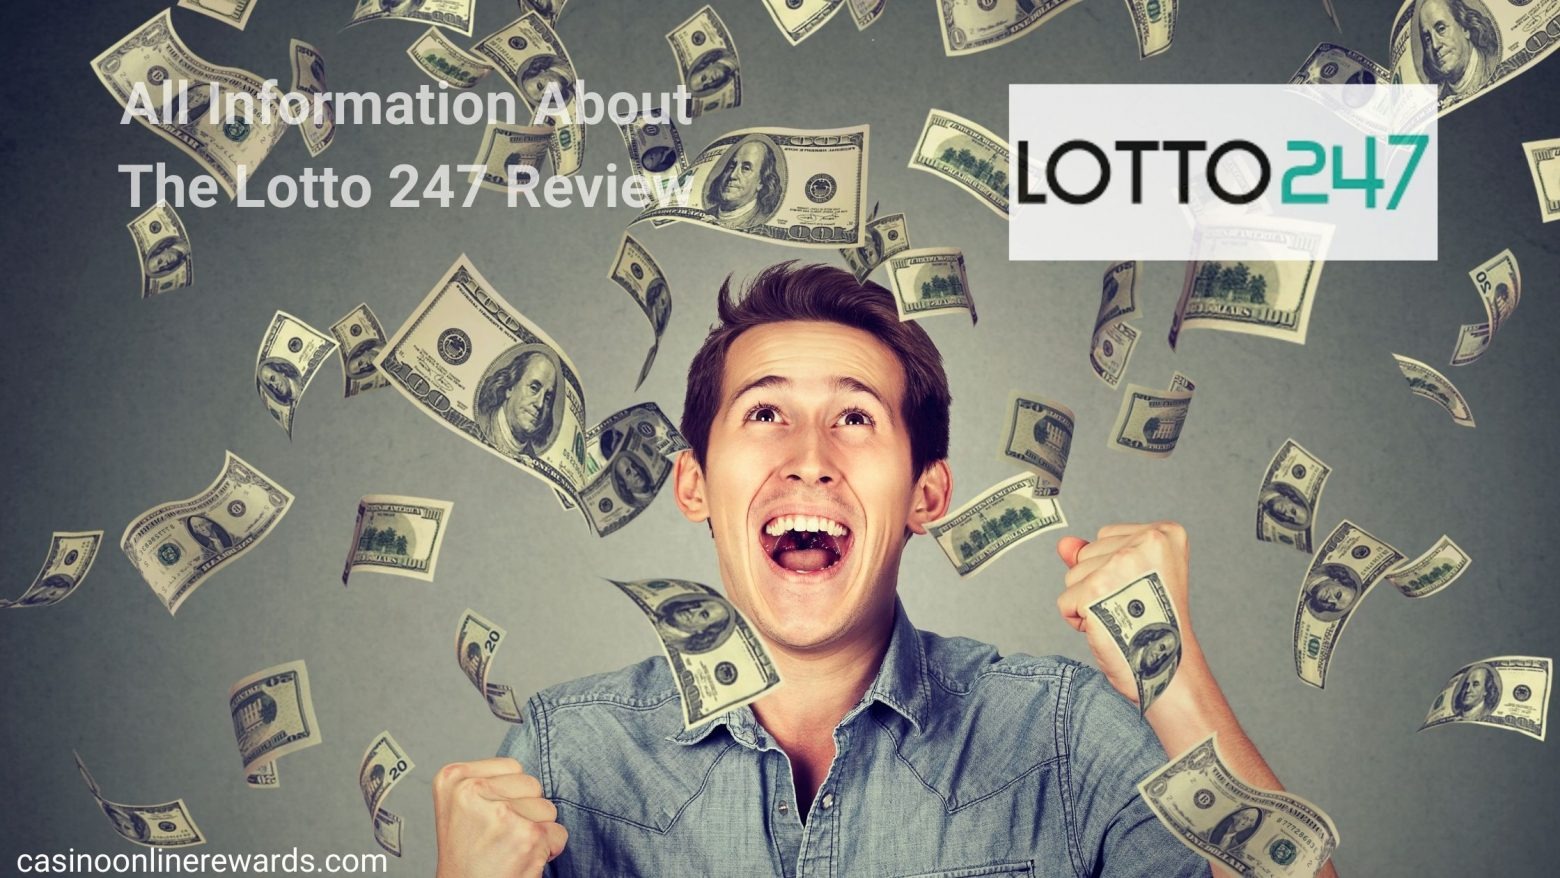 All Information About The Lotto247 Review